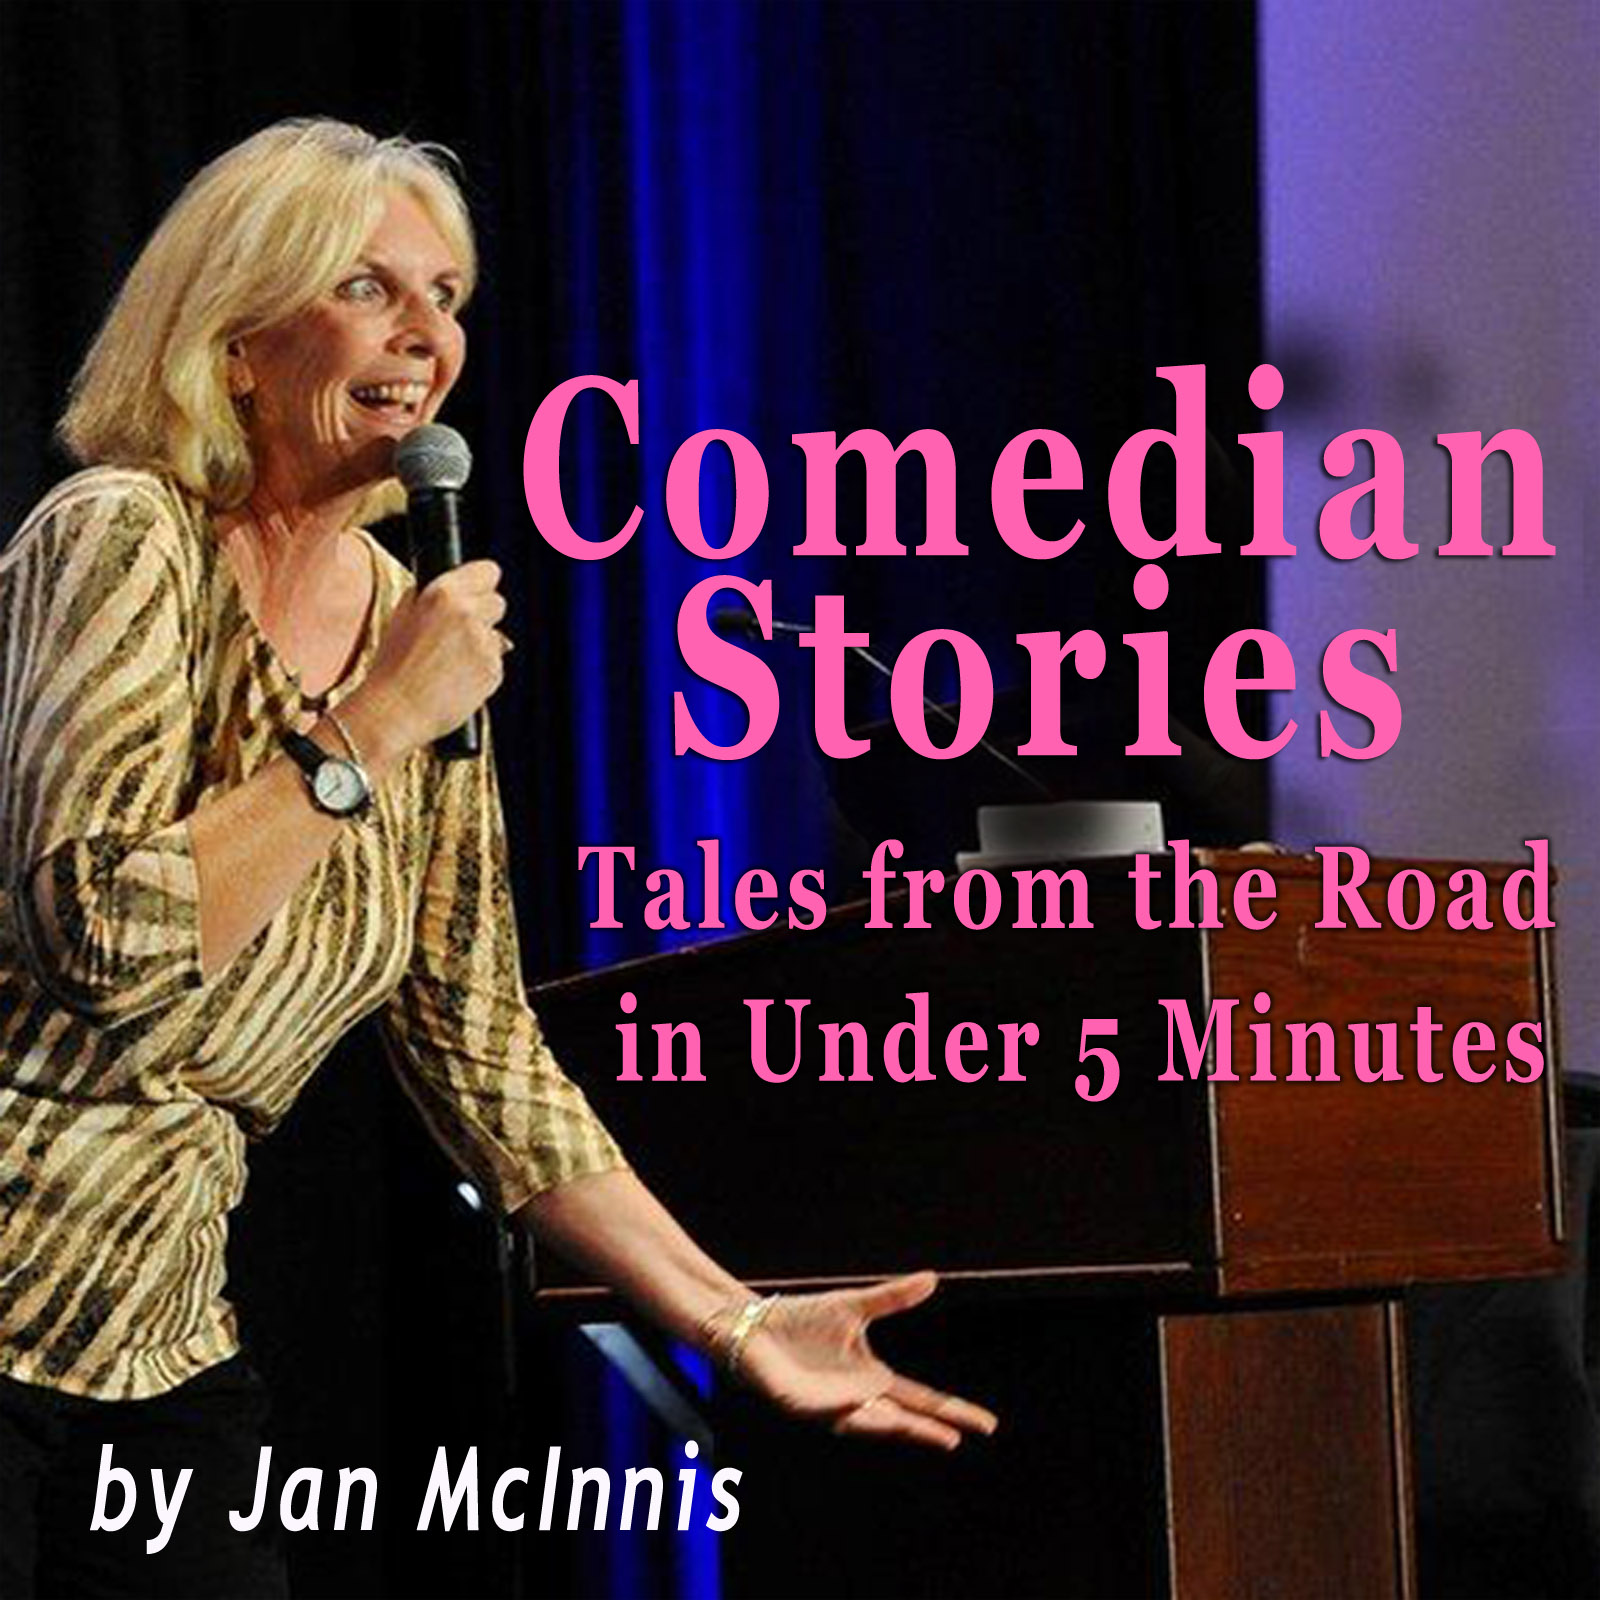 Caption: Comedian Stories, Credit: Comedian Jan McInni